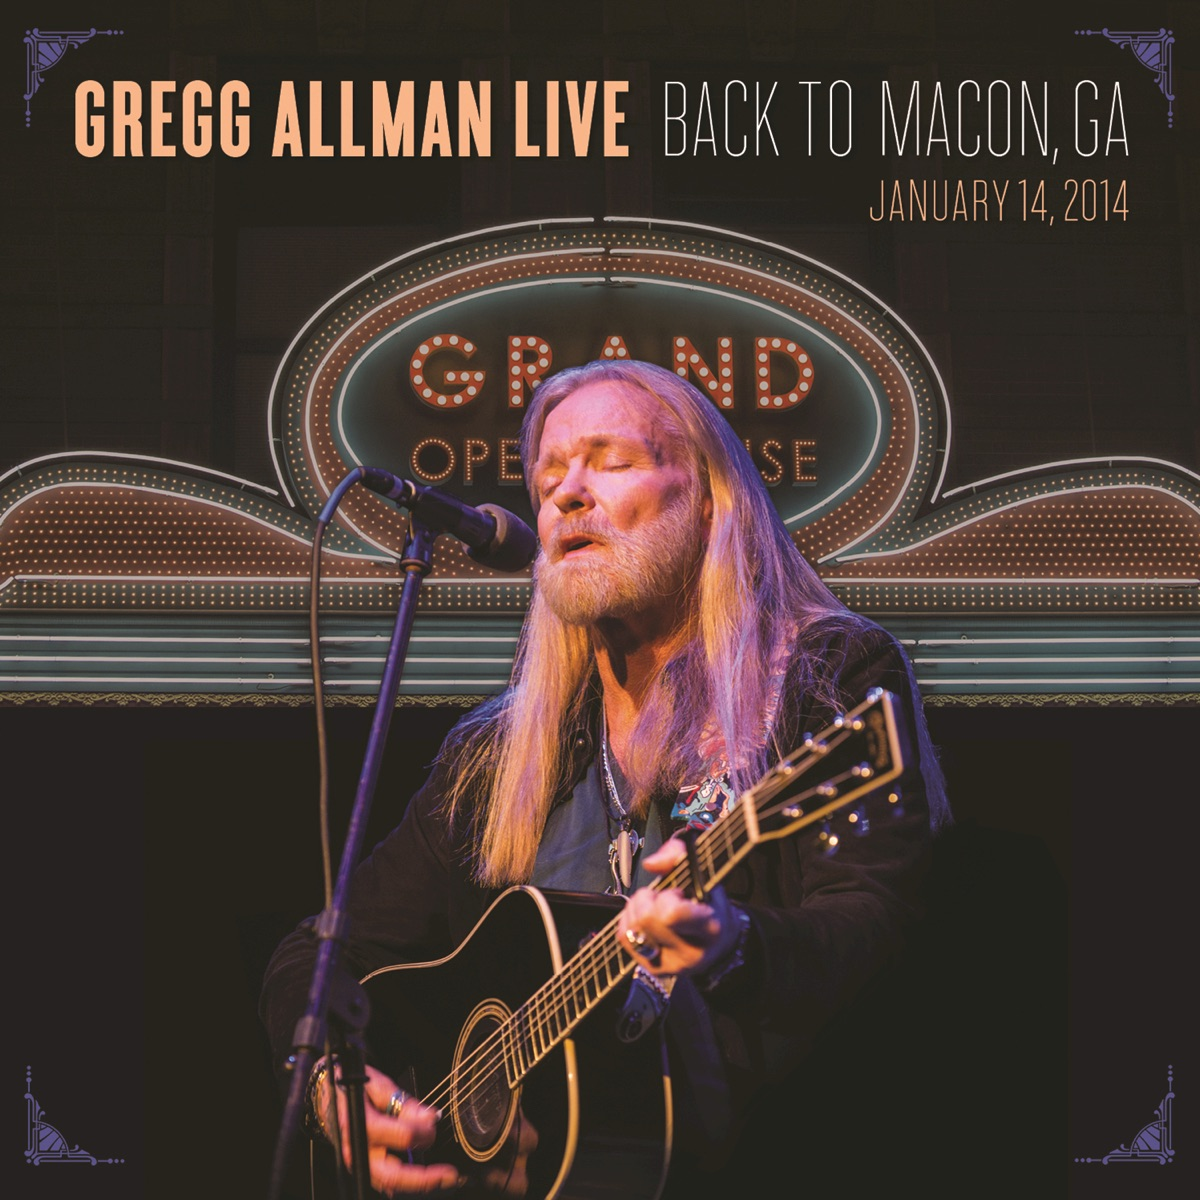 Gregg Allman Live Back to Macon GA Gregg Allman CD cover